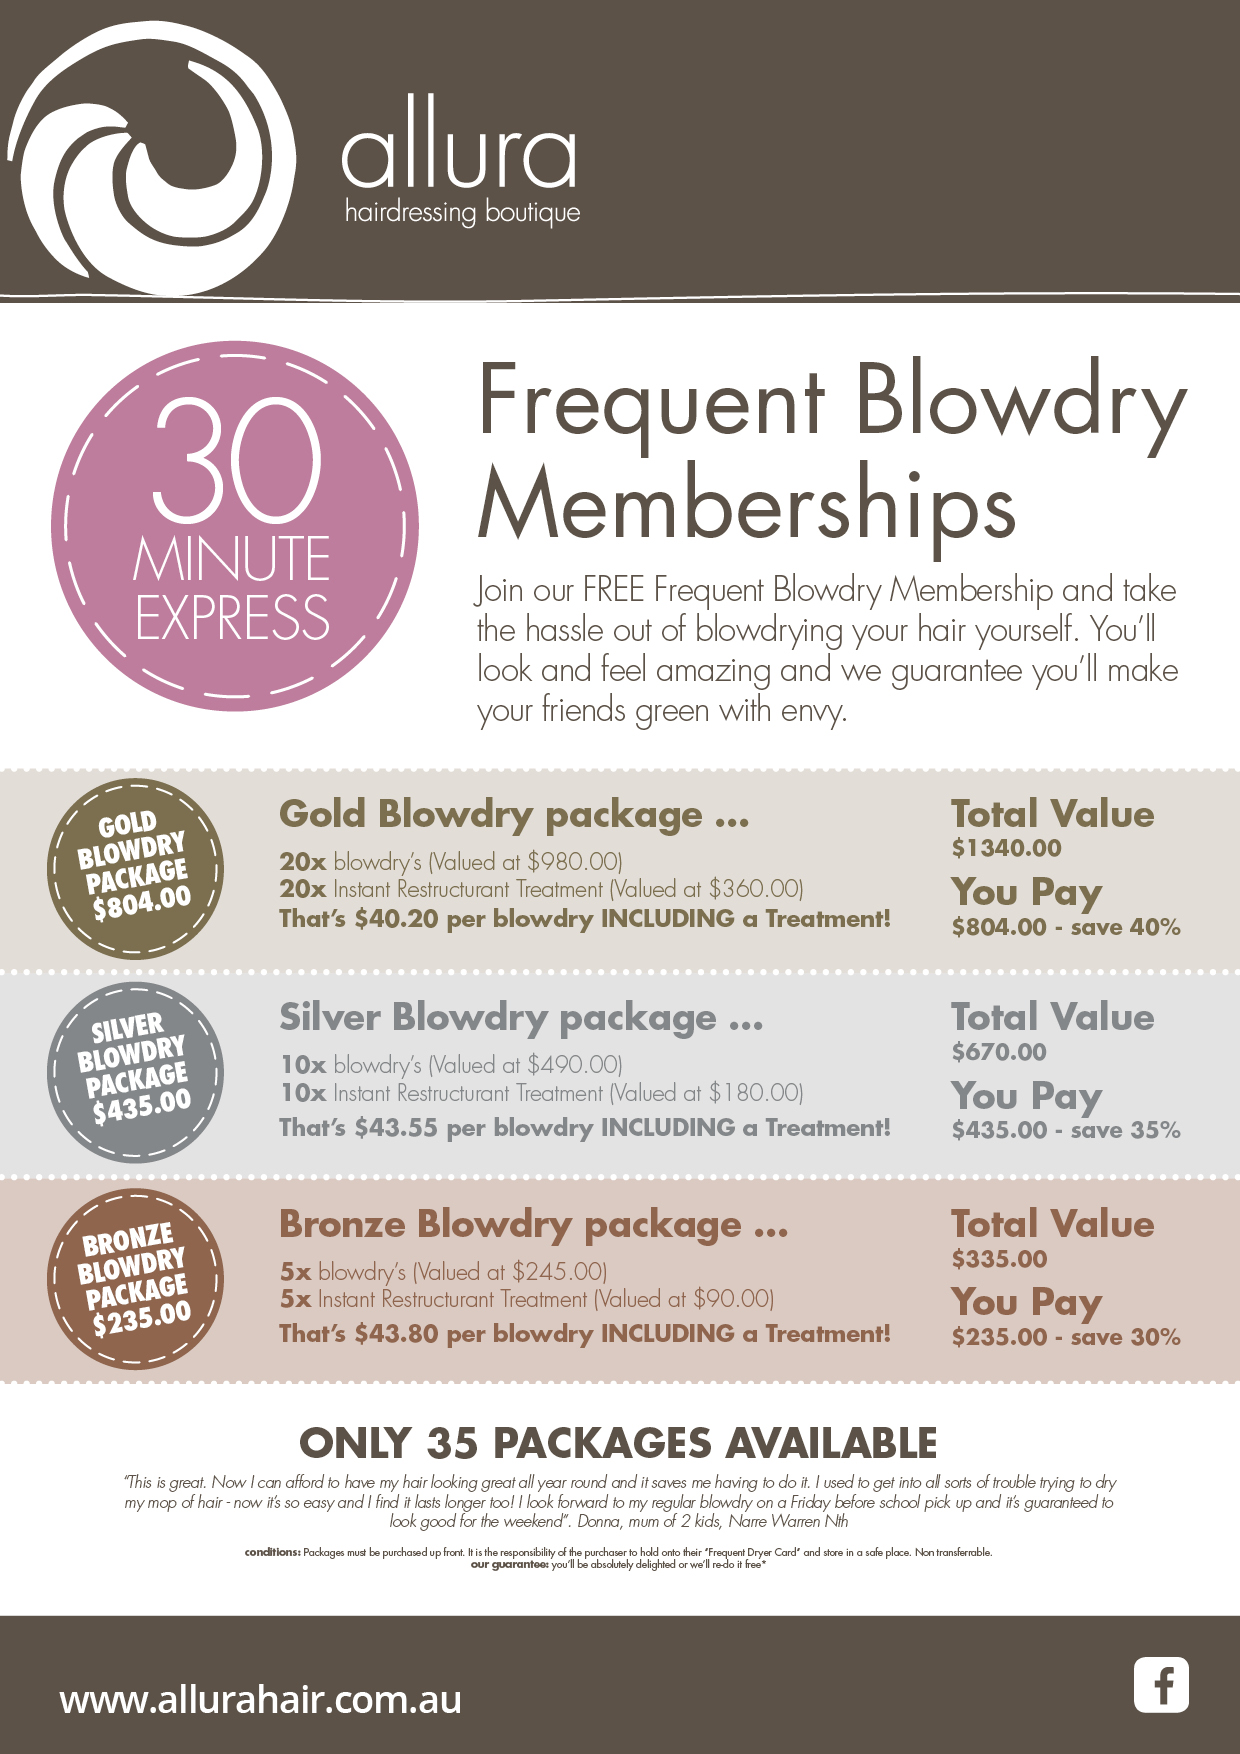 Frequent Blowdry-Allura Hairdressing Boutique